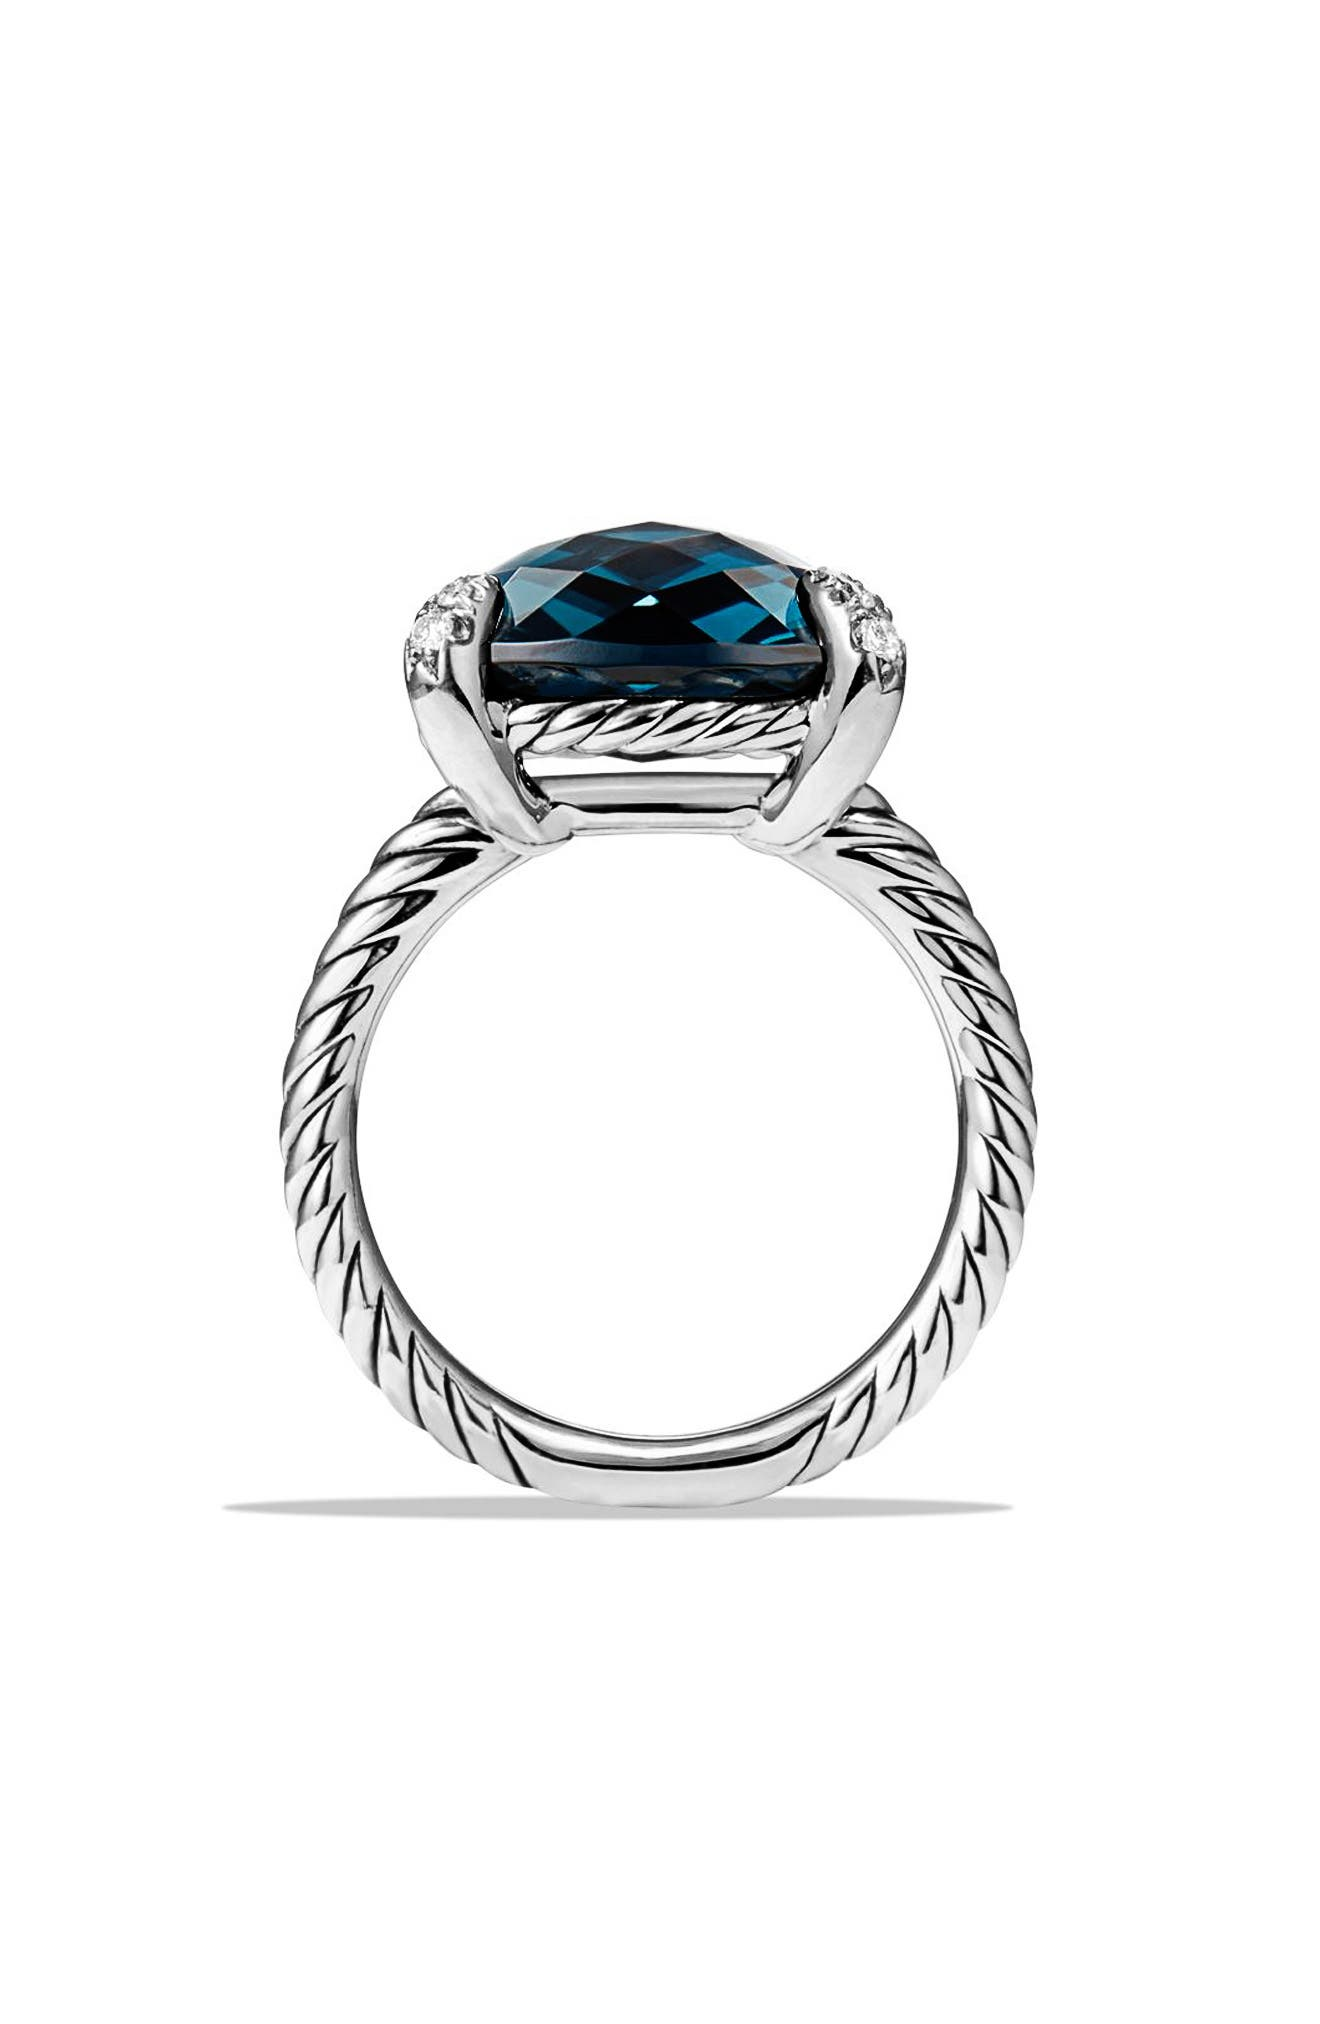 'Châtelaine' Ring with Semiprecious Stone and Diamonds,                             Alternate thumbnail 5, color,                             SILVER/ HAMPTON BLUE TOPAZ